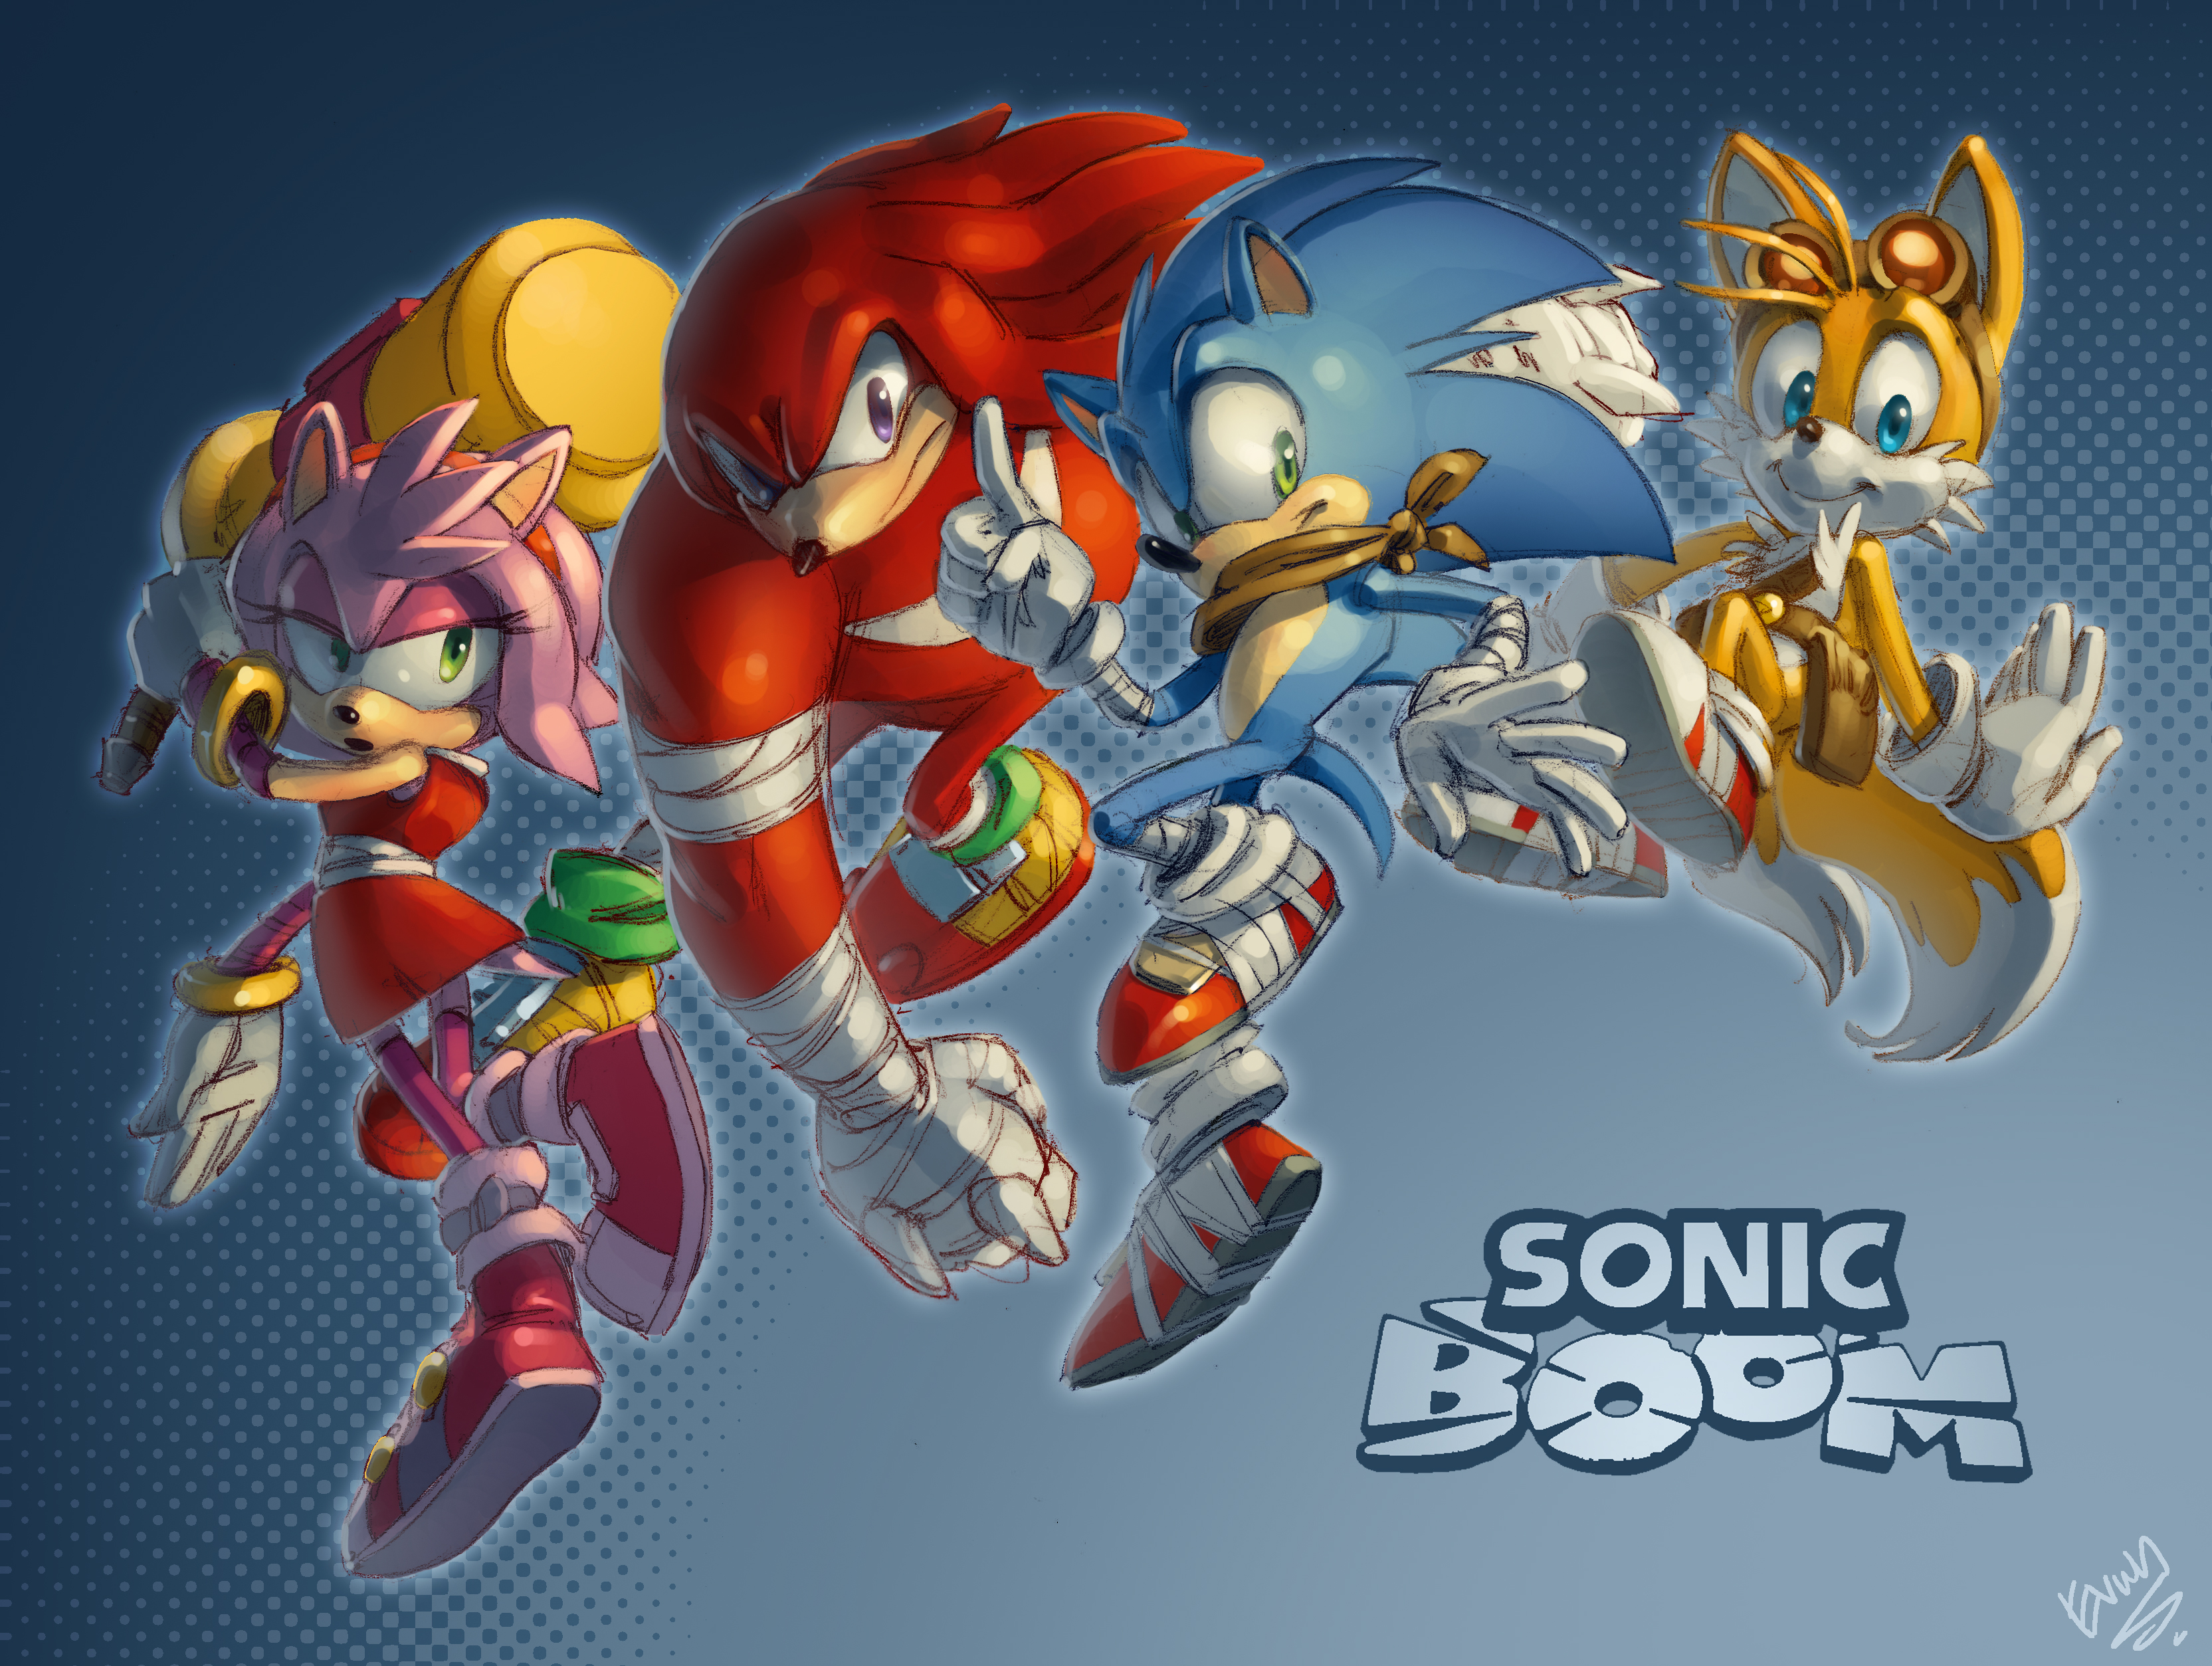 Sonic boom full hd wallpaper and background image 3329x2507 id tv show sonic boom sonic the hedgehog knuckles the echidna amy rose miles voltagebd Gallery